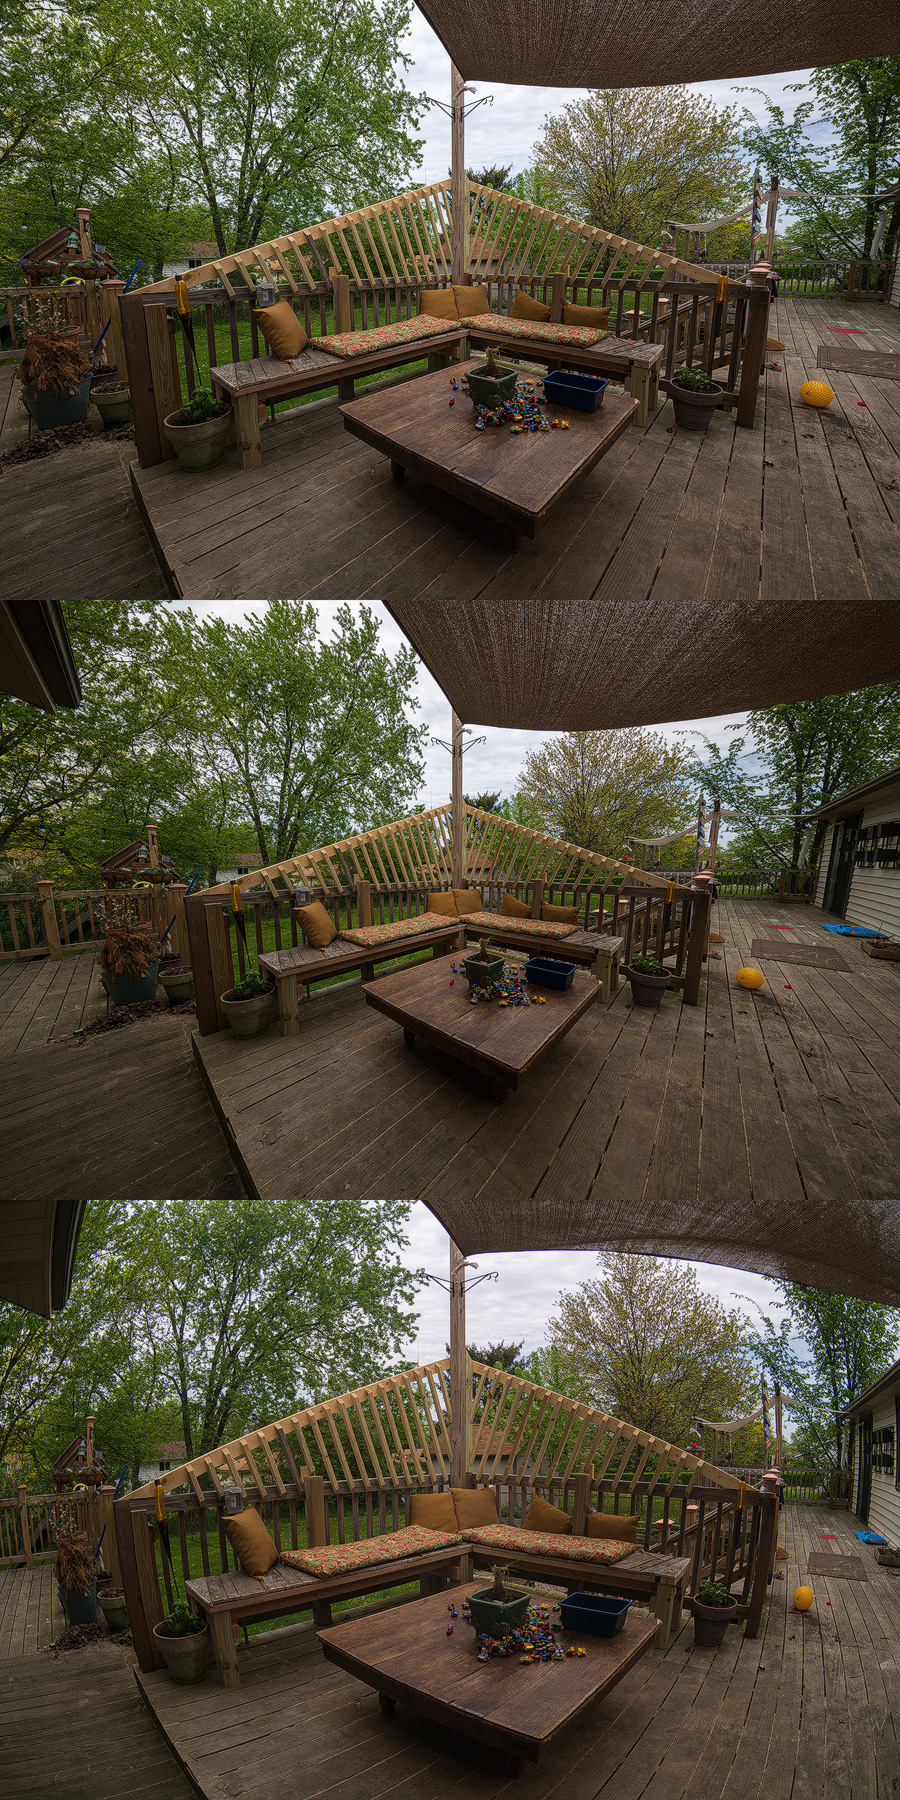 Some test shots on our back deck. Top to bottom- 14mm, 11mm, 16mm fisheye. You can see the Irix is just about as wide as the fisheye without the distortion!